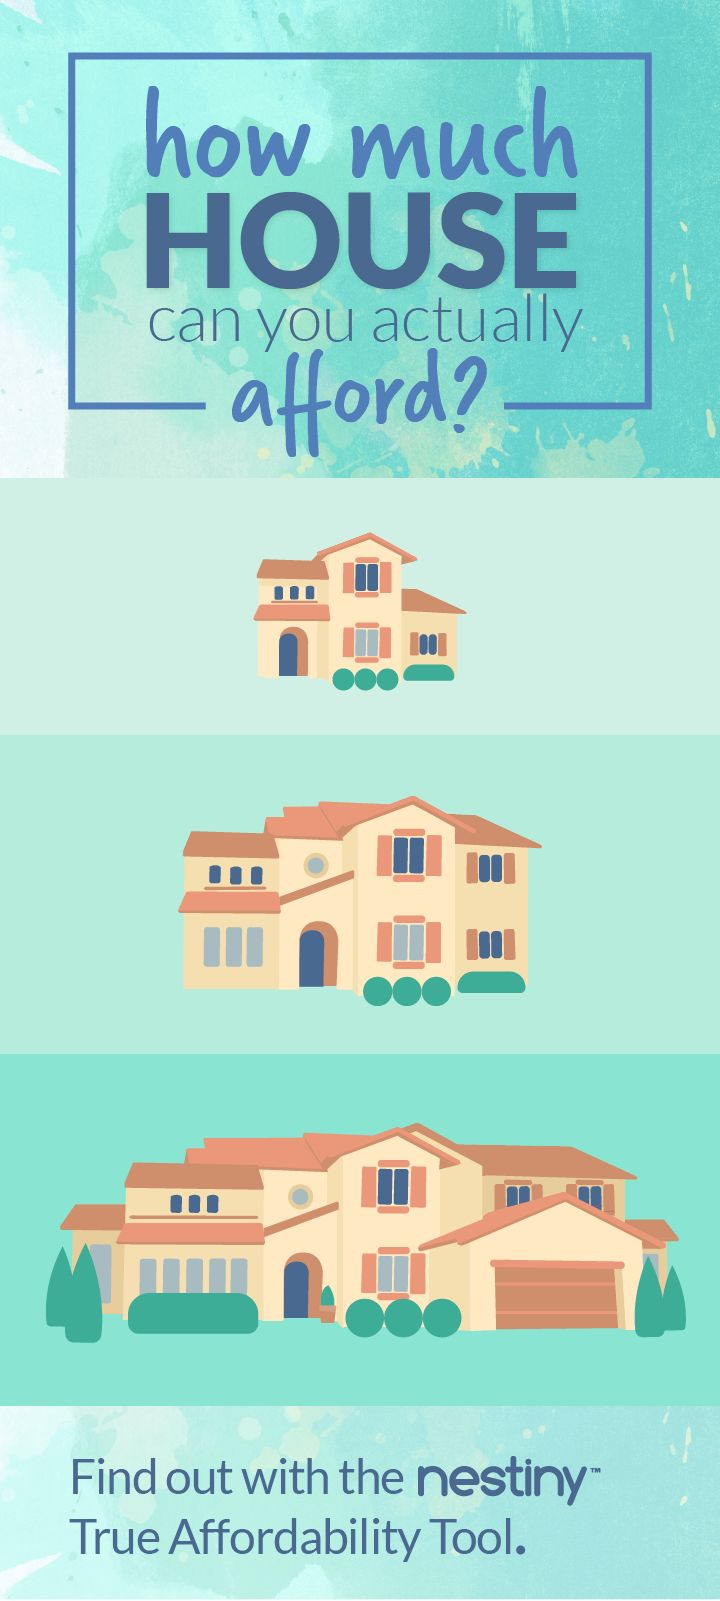 Thinking of buying a home? Not sure what you should spend? Not sure what home size is right for you? No worries! We've got you covered. Get started here with our free Homebuying tips, tools and games at Nestiny! Visit www.Nestiny.com and get your journey started! #homebuying